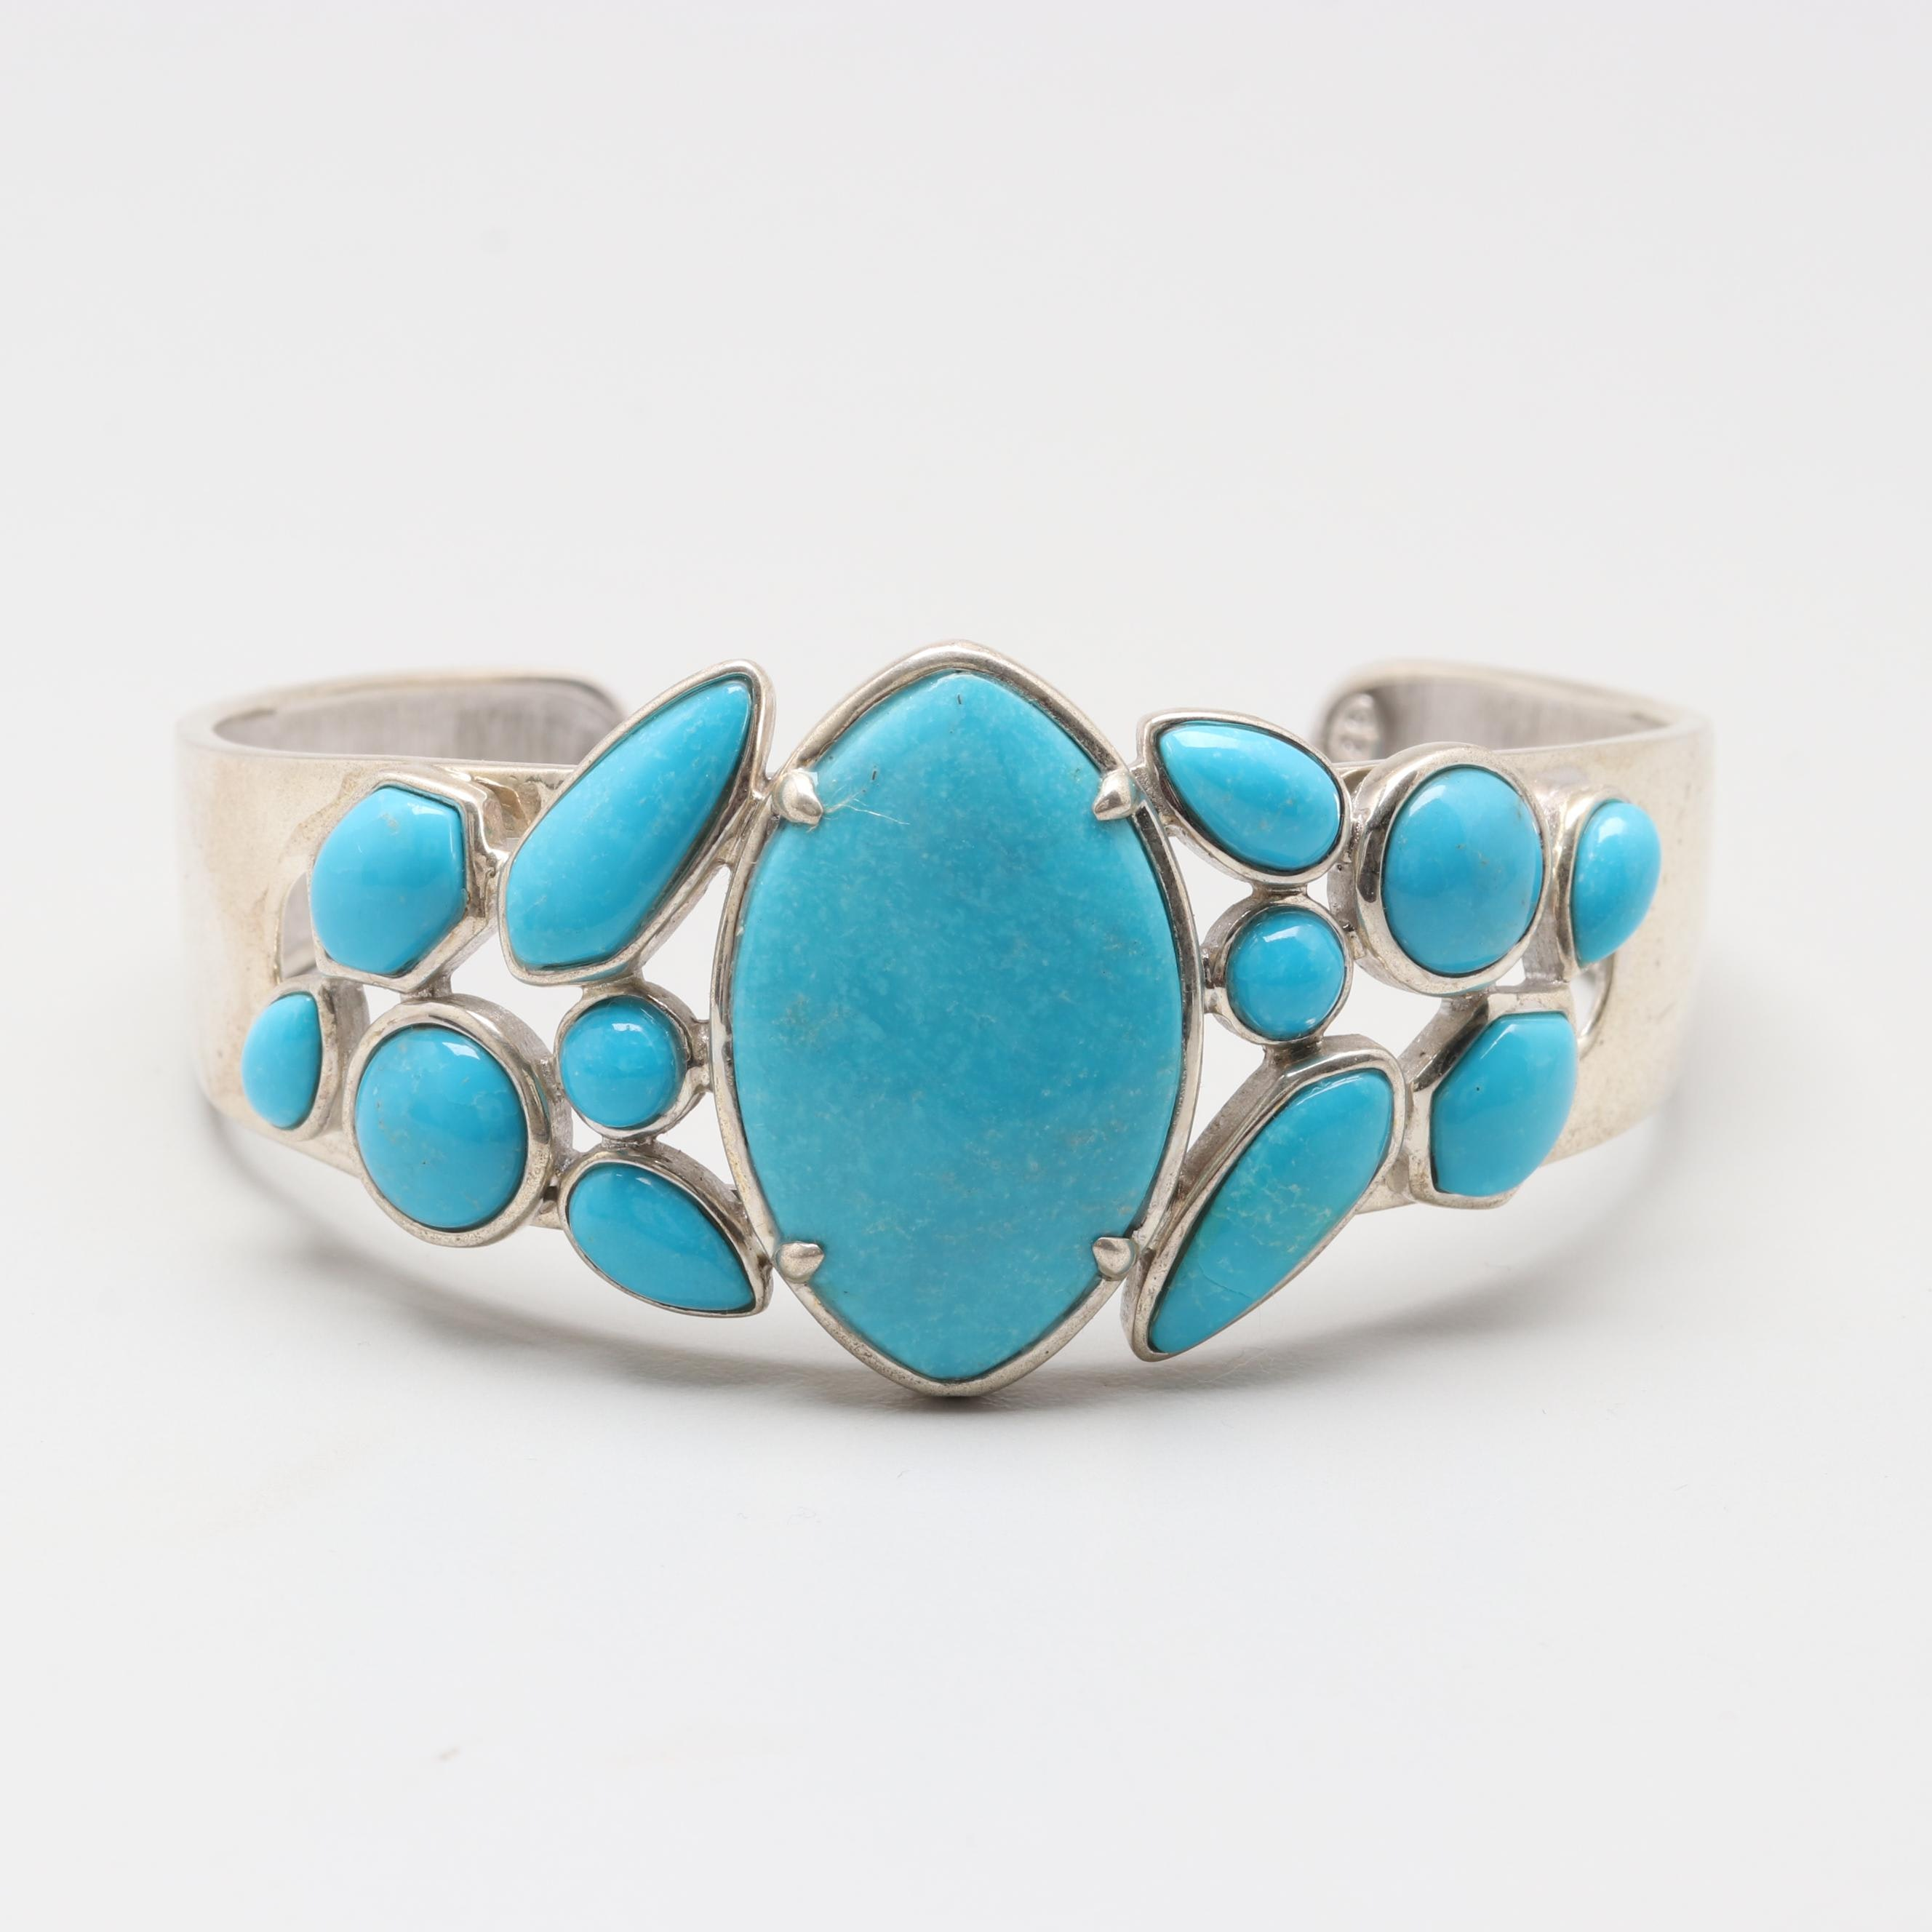 Sterling Silver Stabilized Turquoise Cuff Bracelet